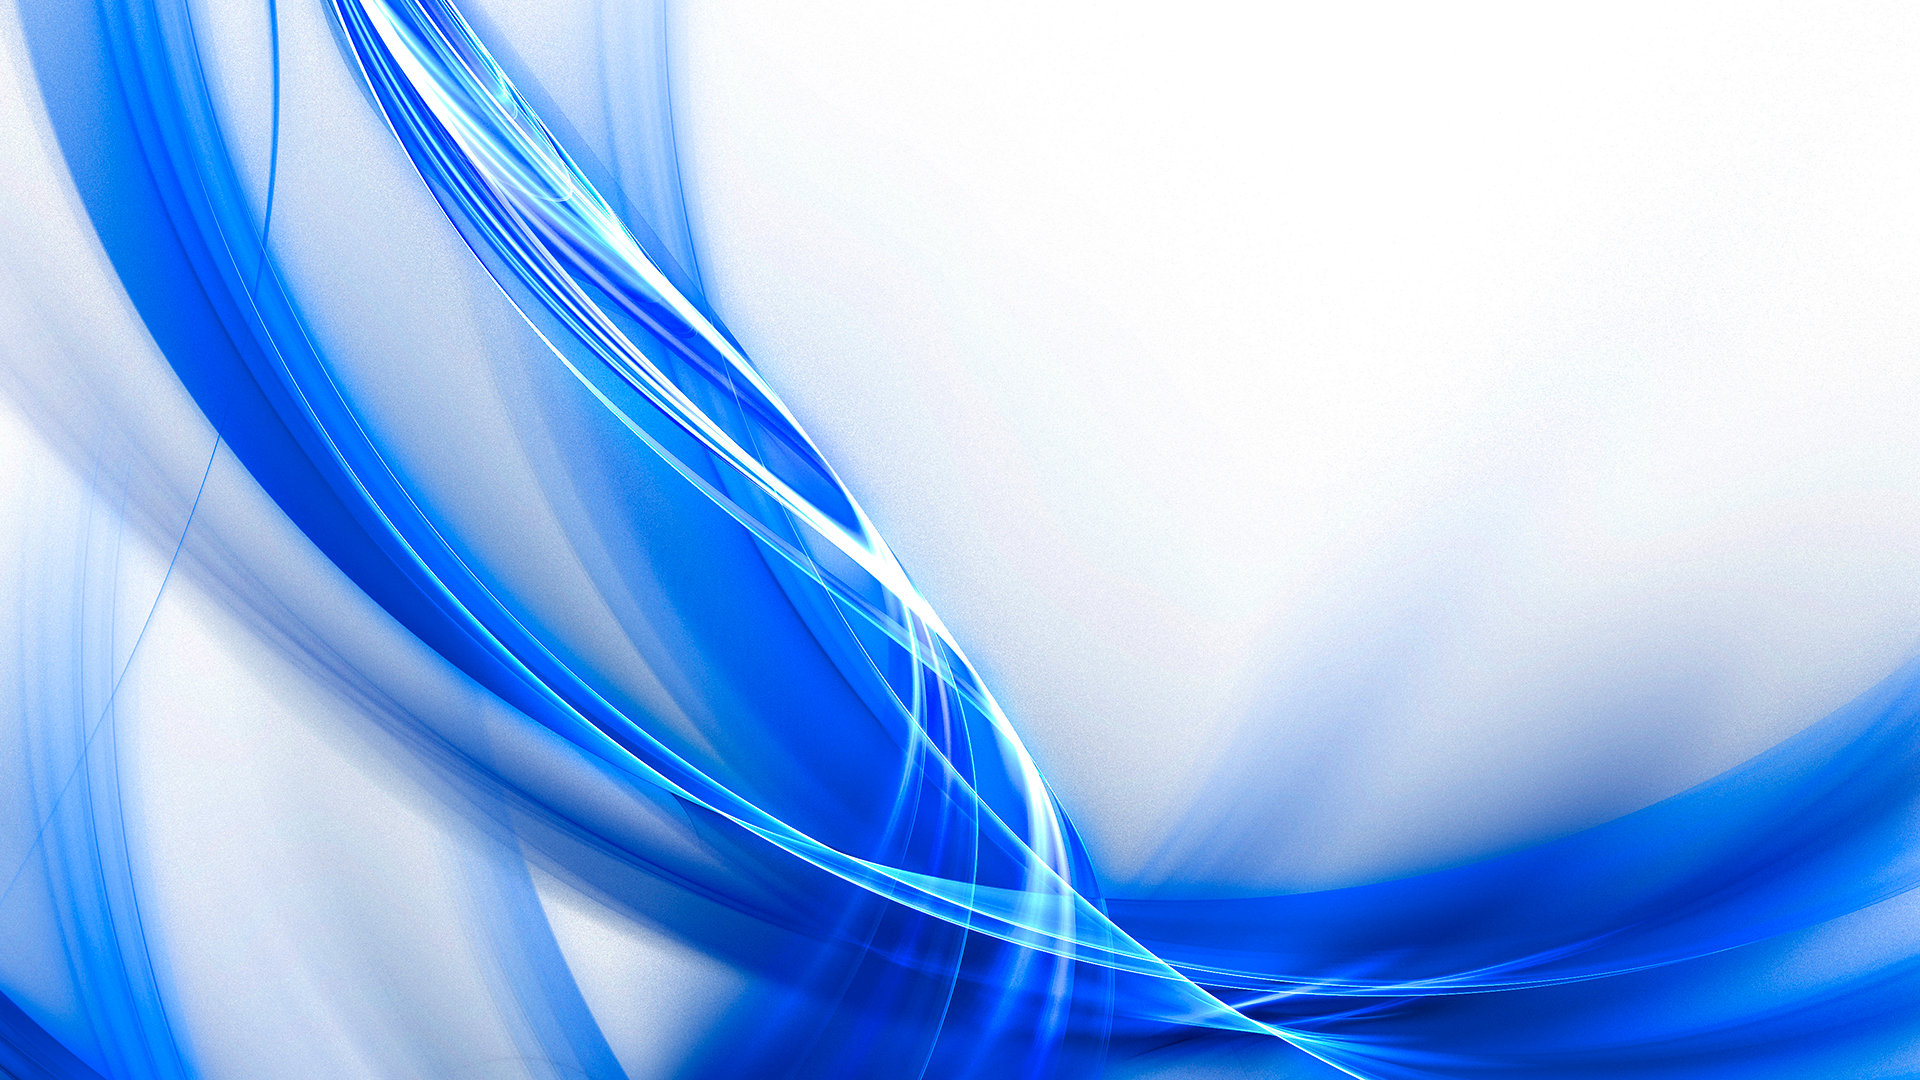 Wallpapers Blue And White